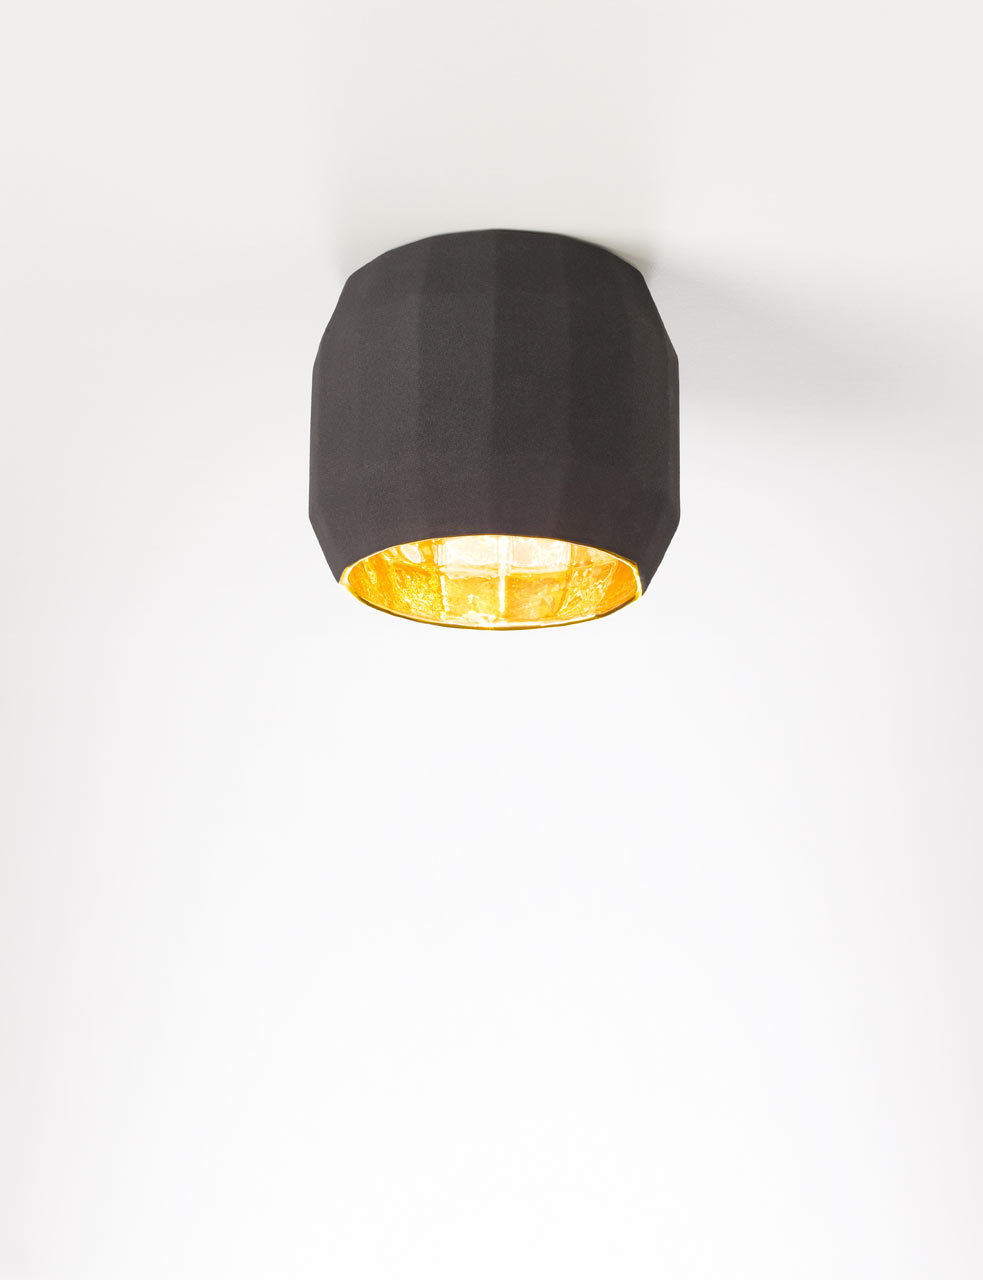 Scotch-Club-Lighting-10-ceiling-black-gold